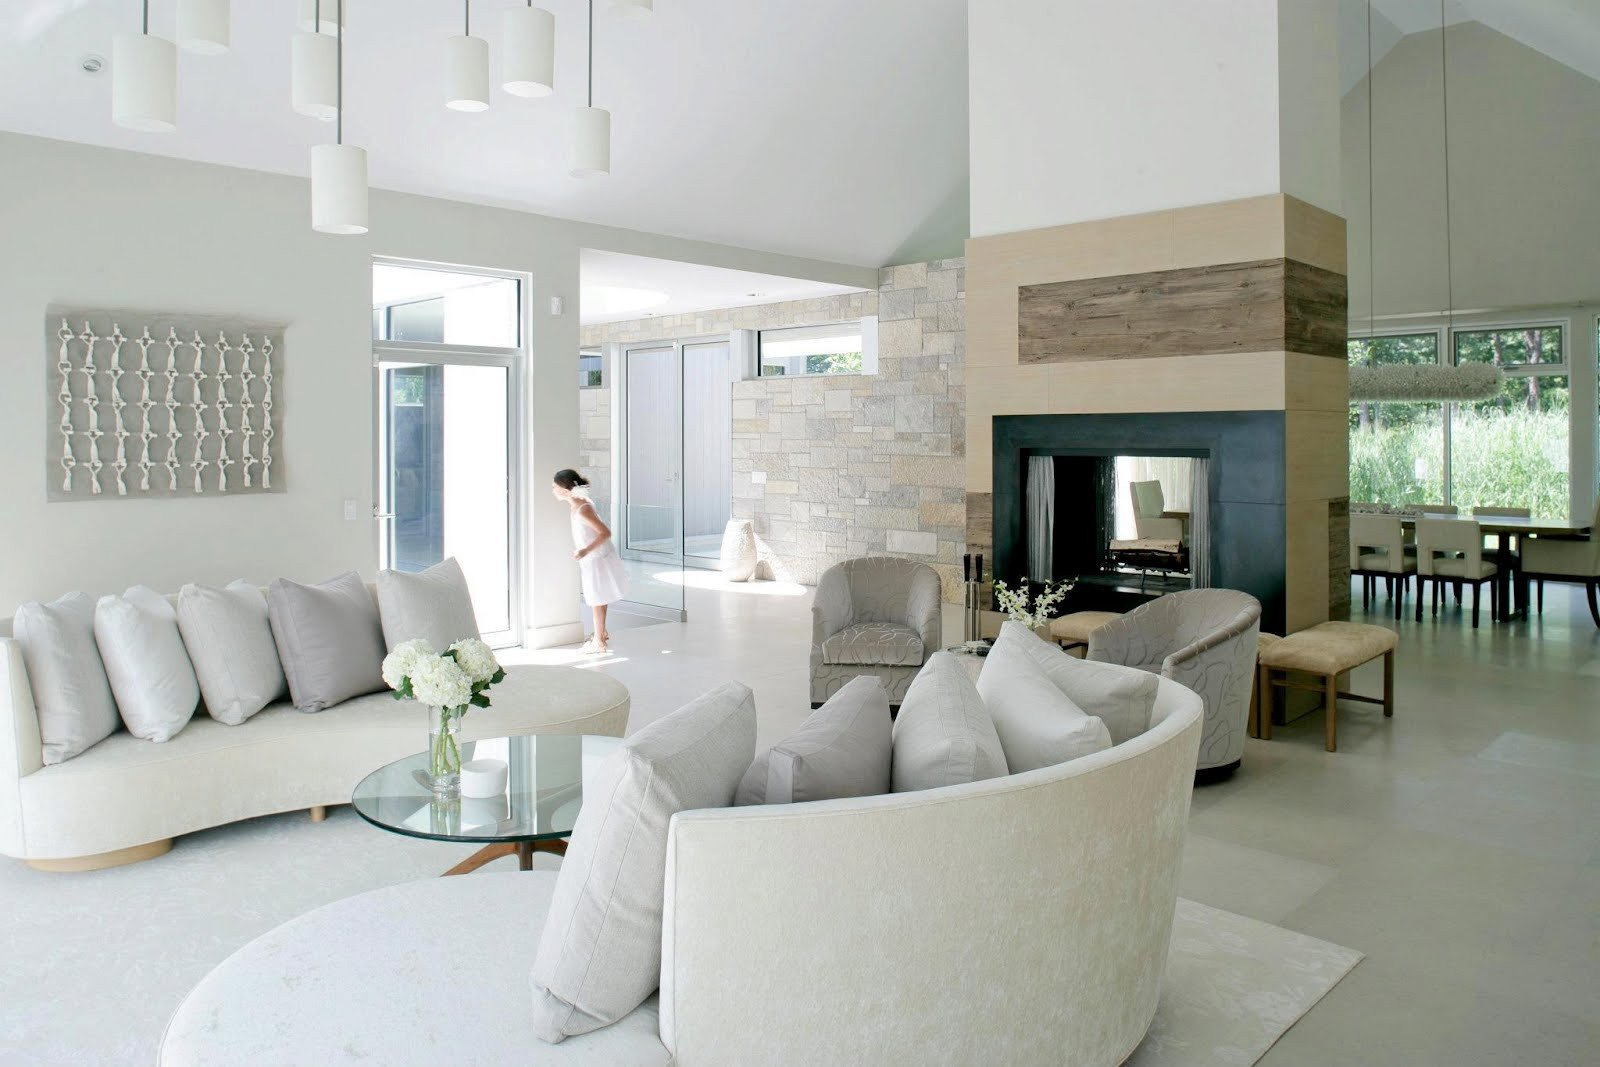 Contemporary White Living Room New Most Popular Living Room Designs for 2014 Qnud